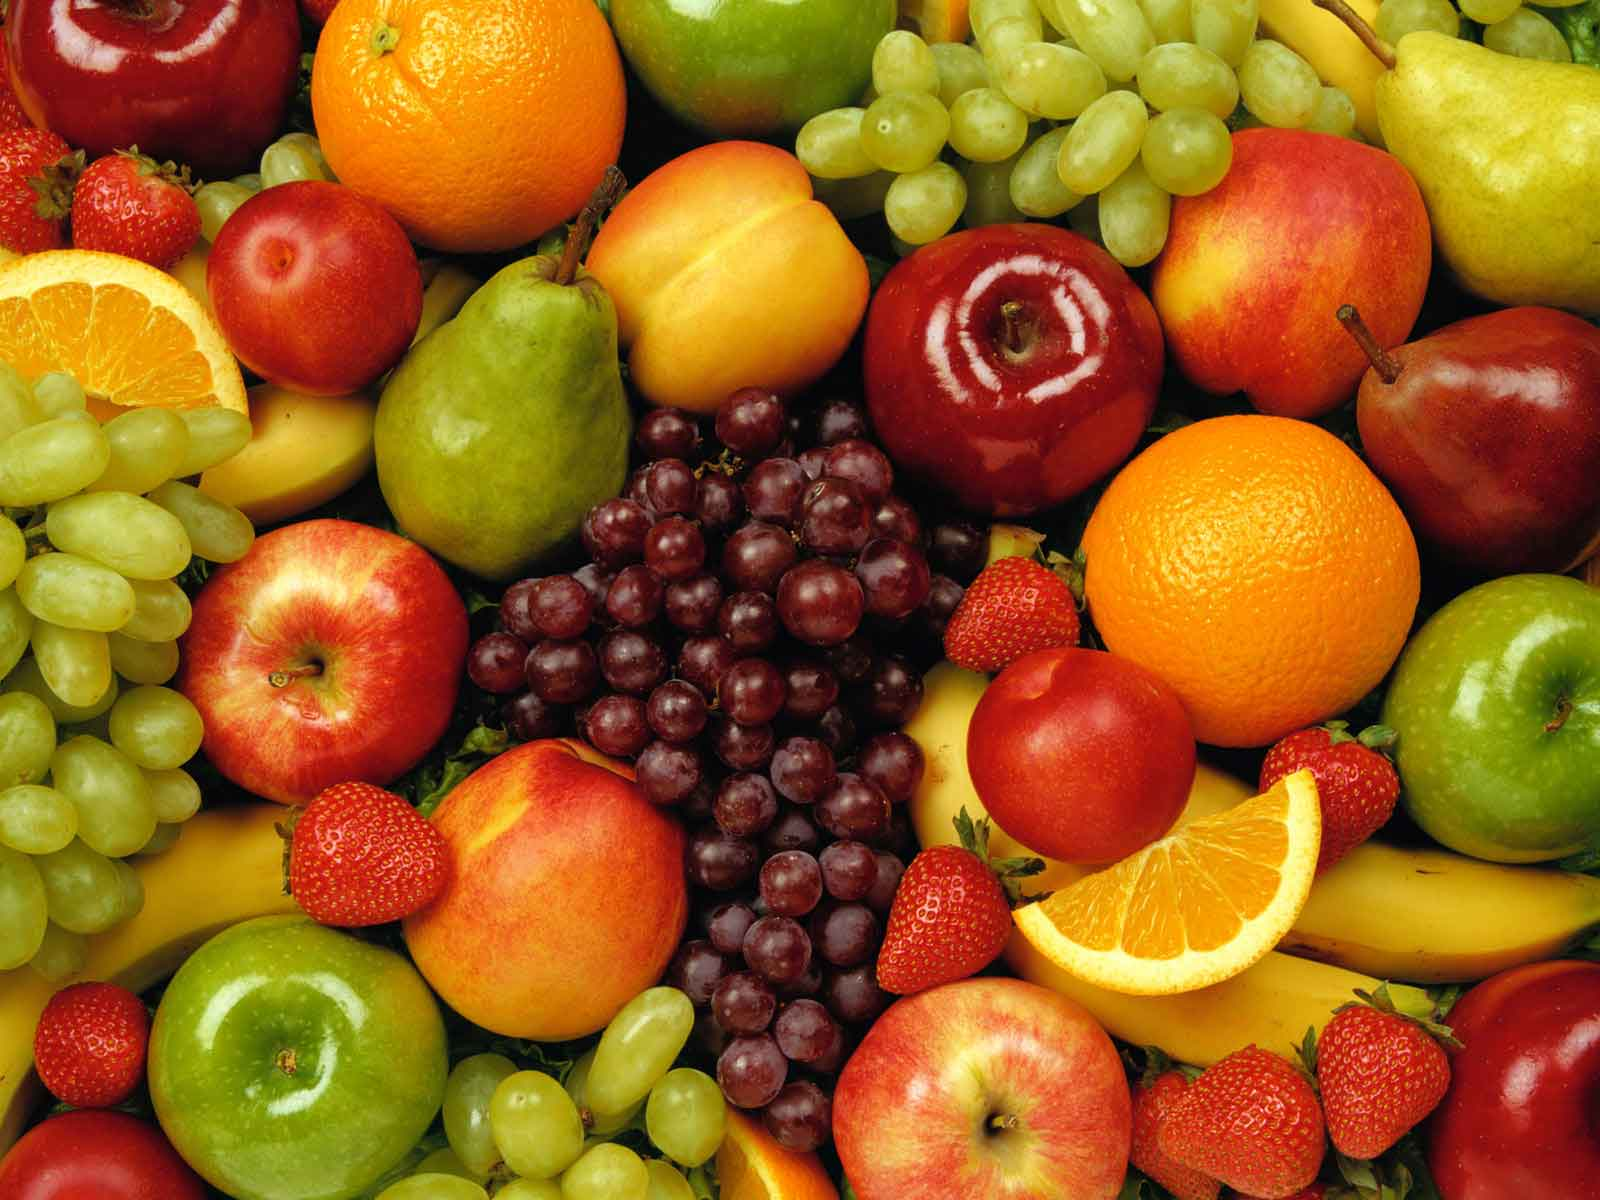 Awesome Gallery of Nutrition Backgrounds: 1600x1200 px, Cheree Beehler